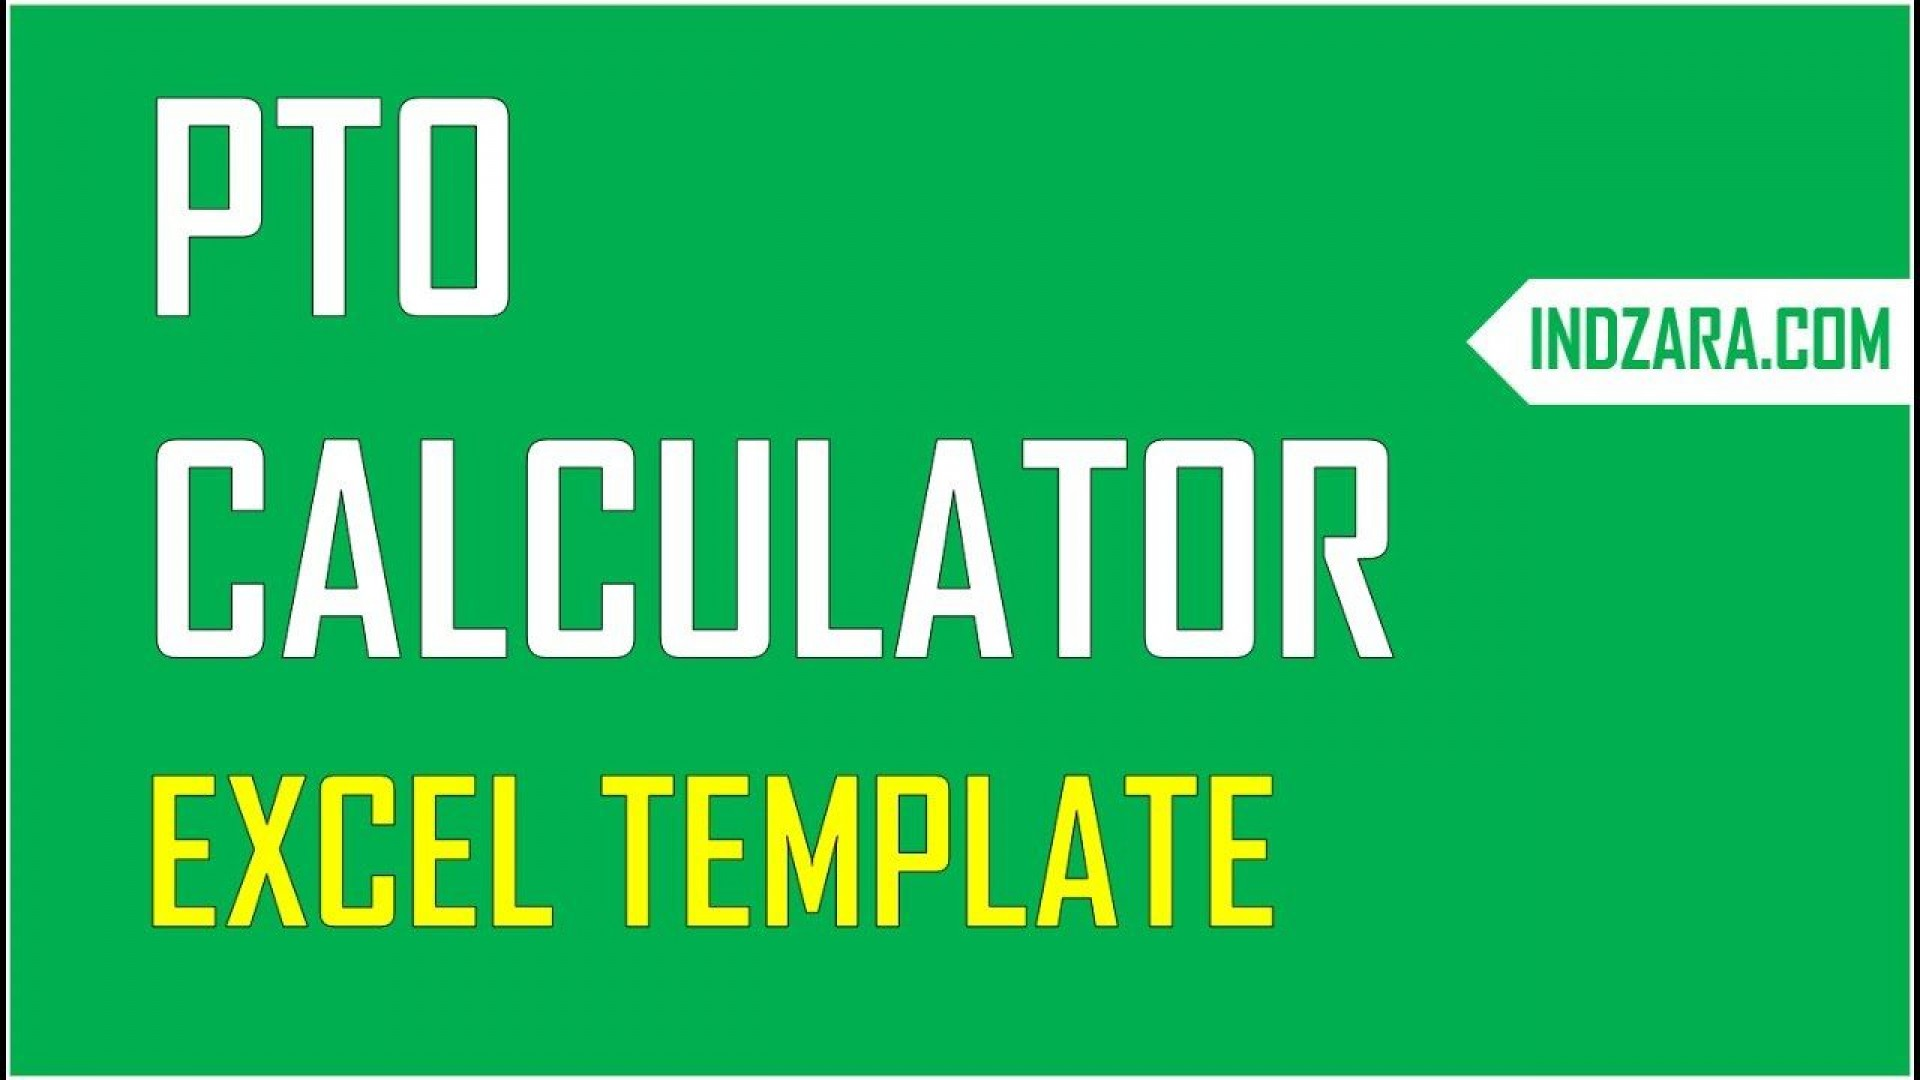 001 Excellent Excel Pto Tracker Template Highest Quality  Employee Vacation Spreadsheet 2019 Free1920